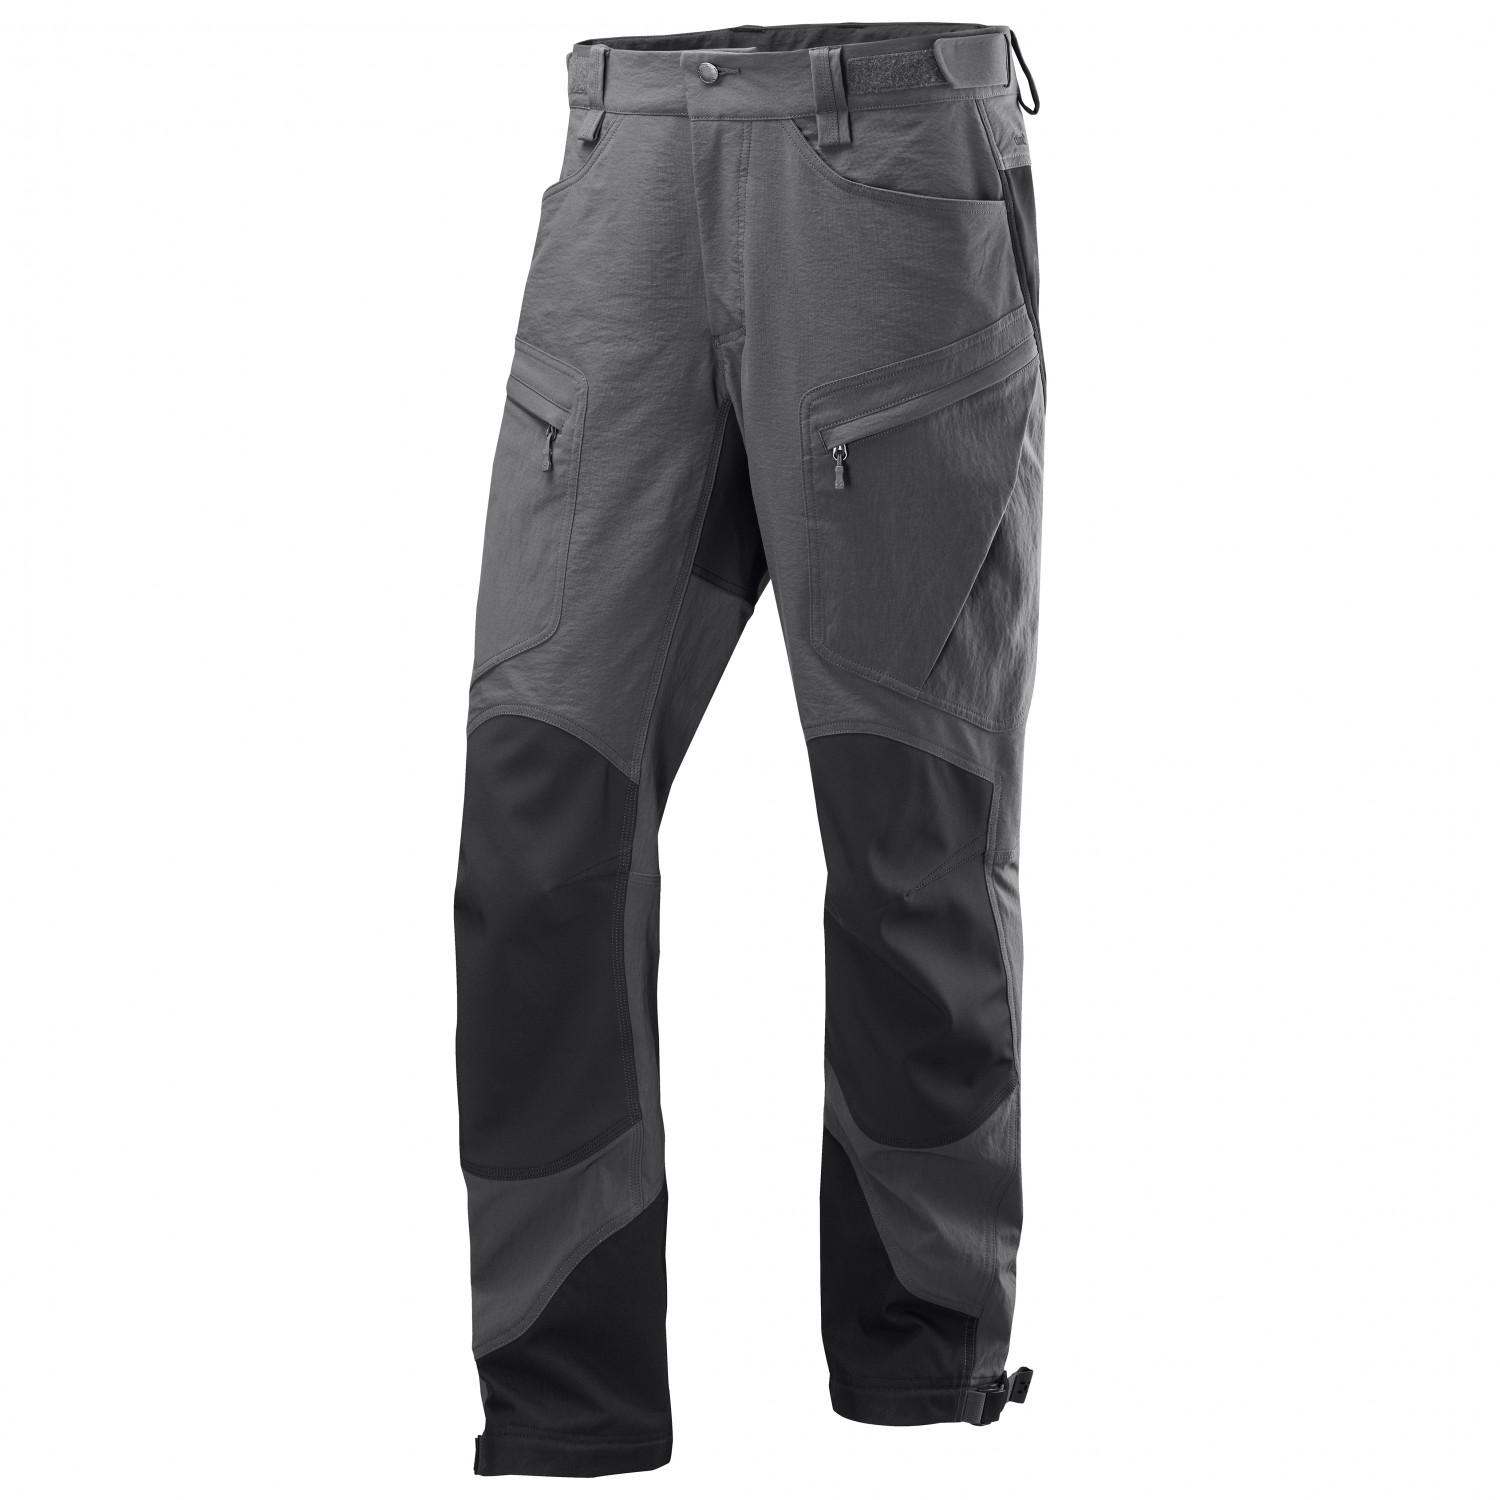 Haglöfs Rugged Mountain Pant Walking